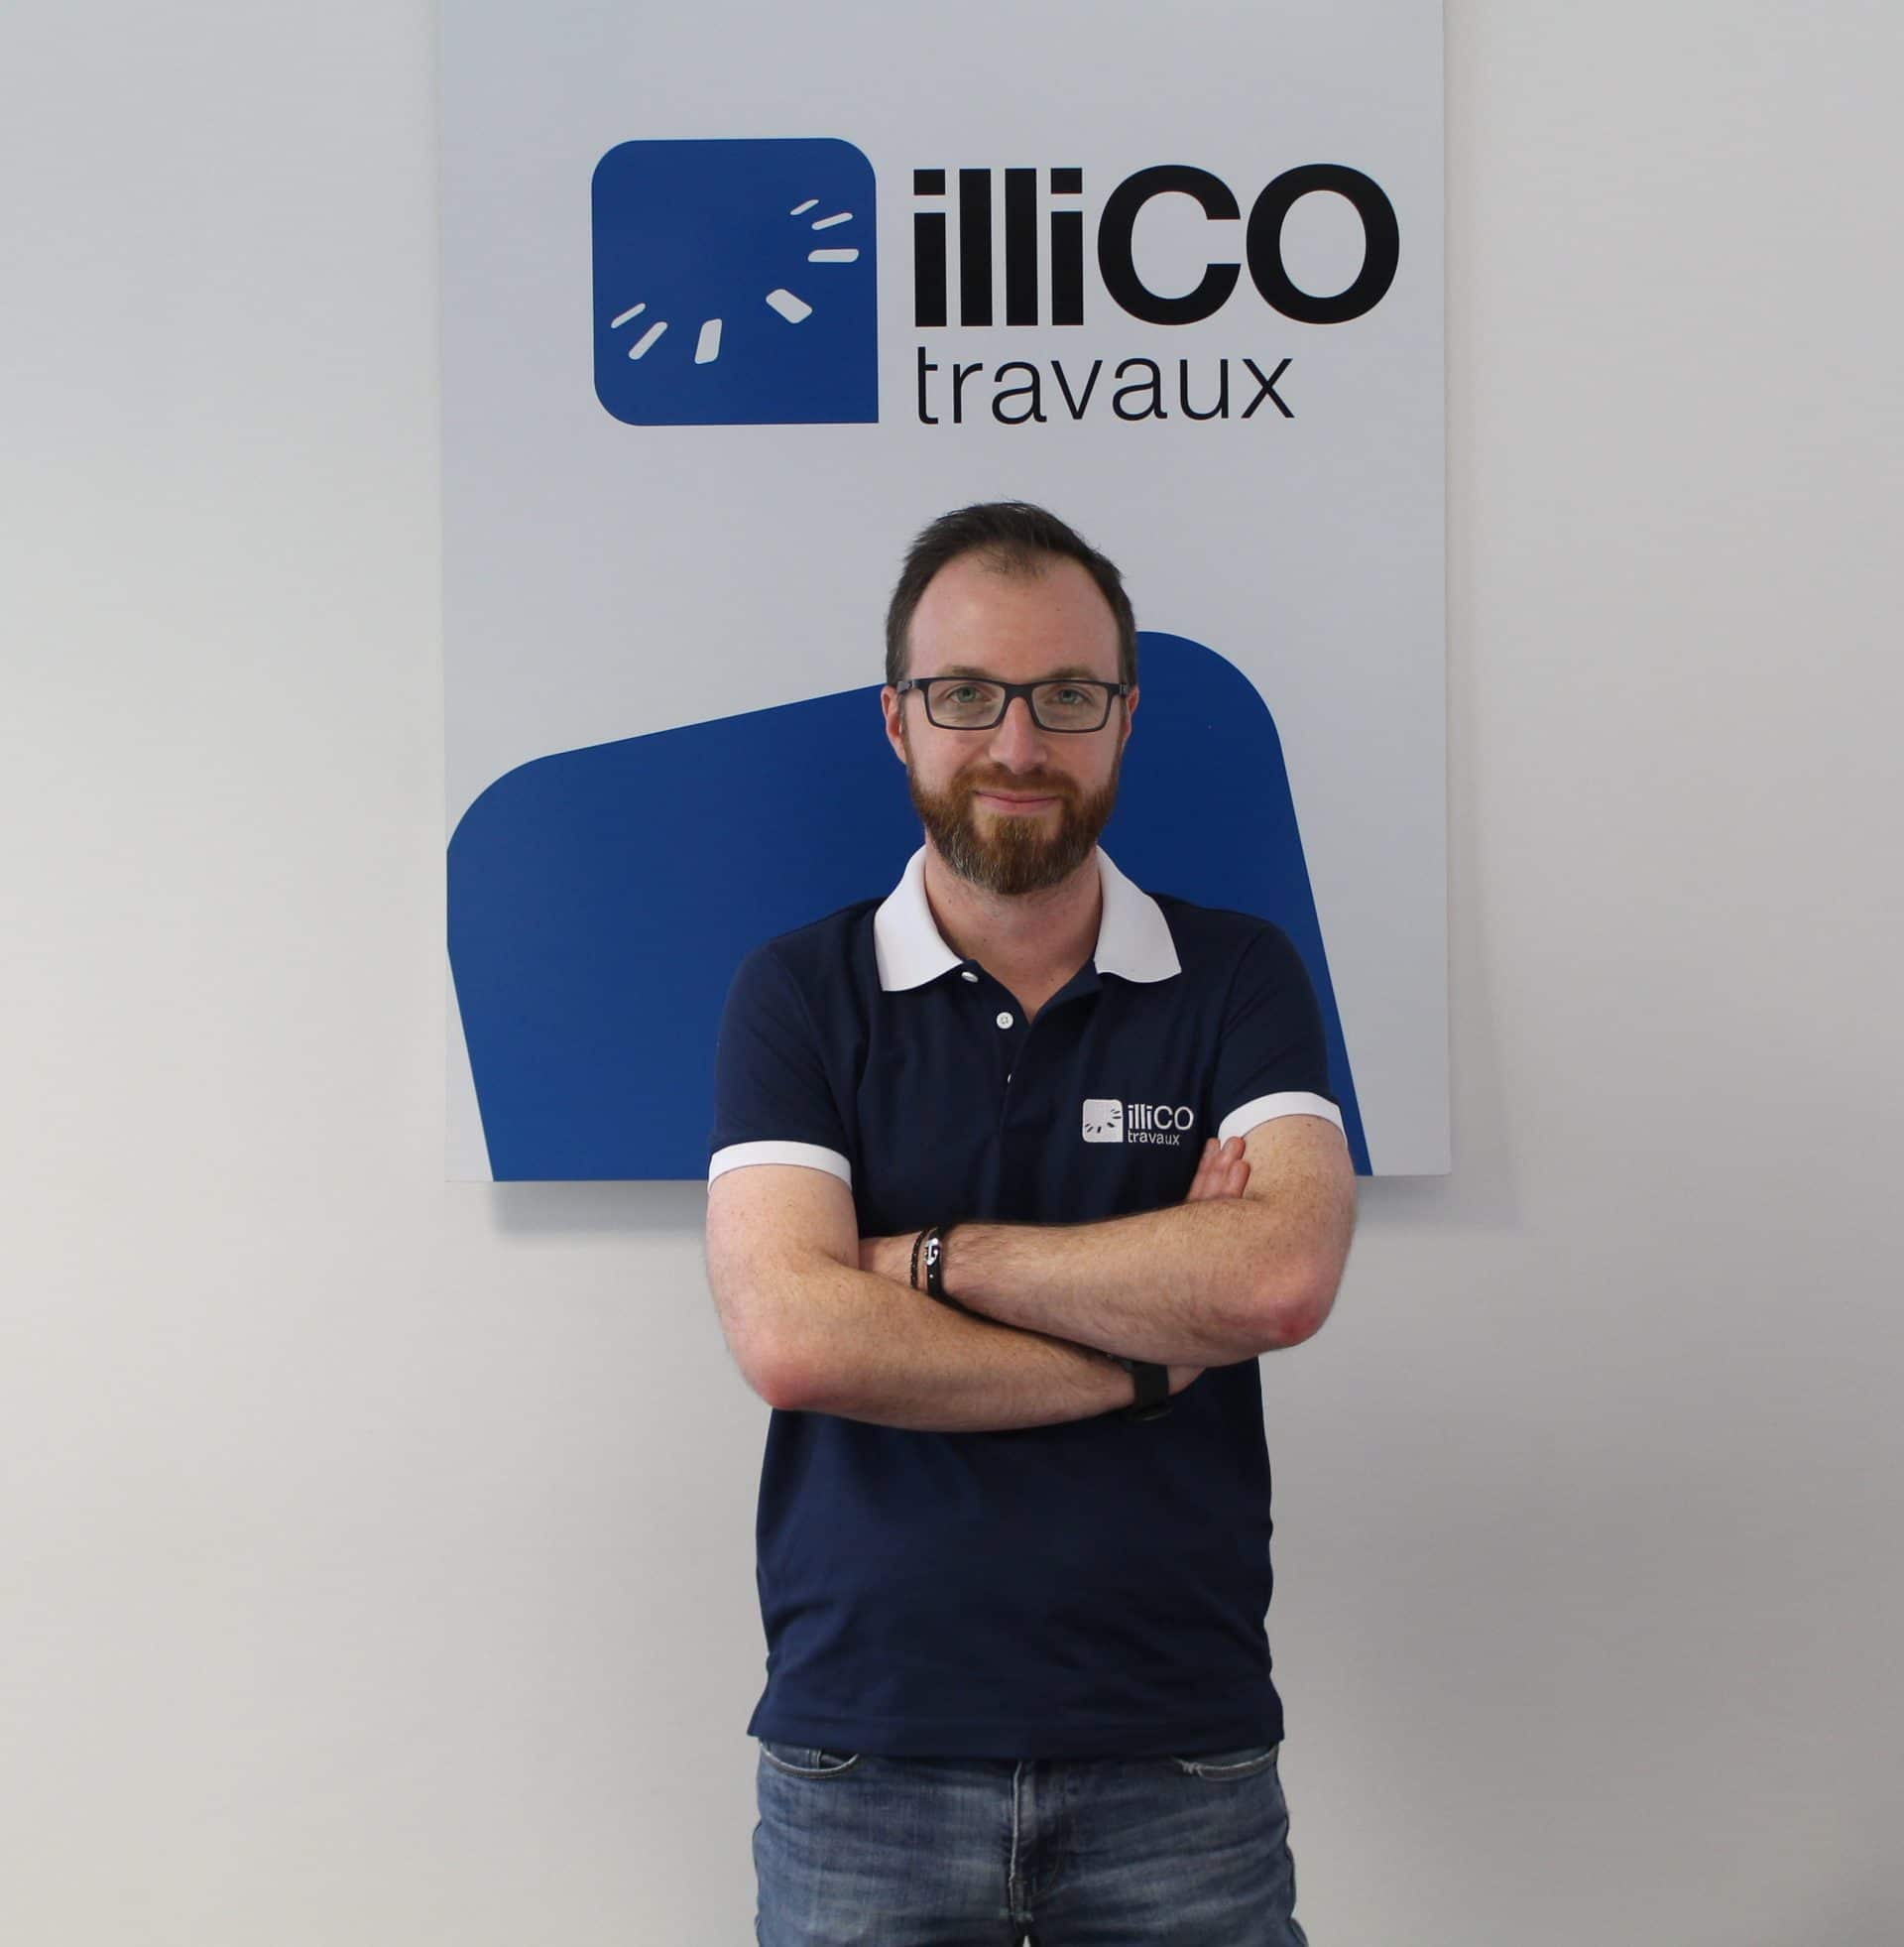 illiCO travaux Saint-Omer